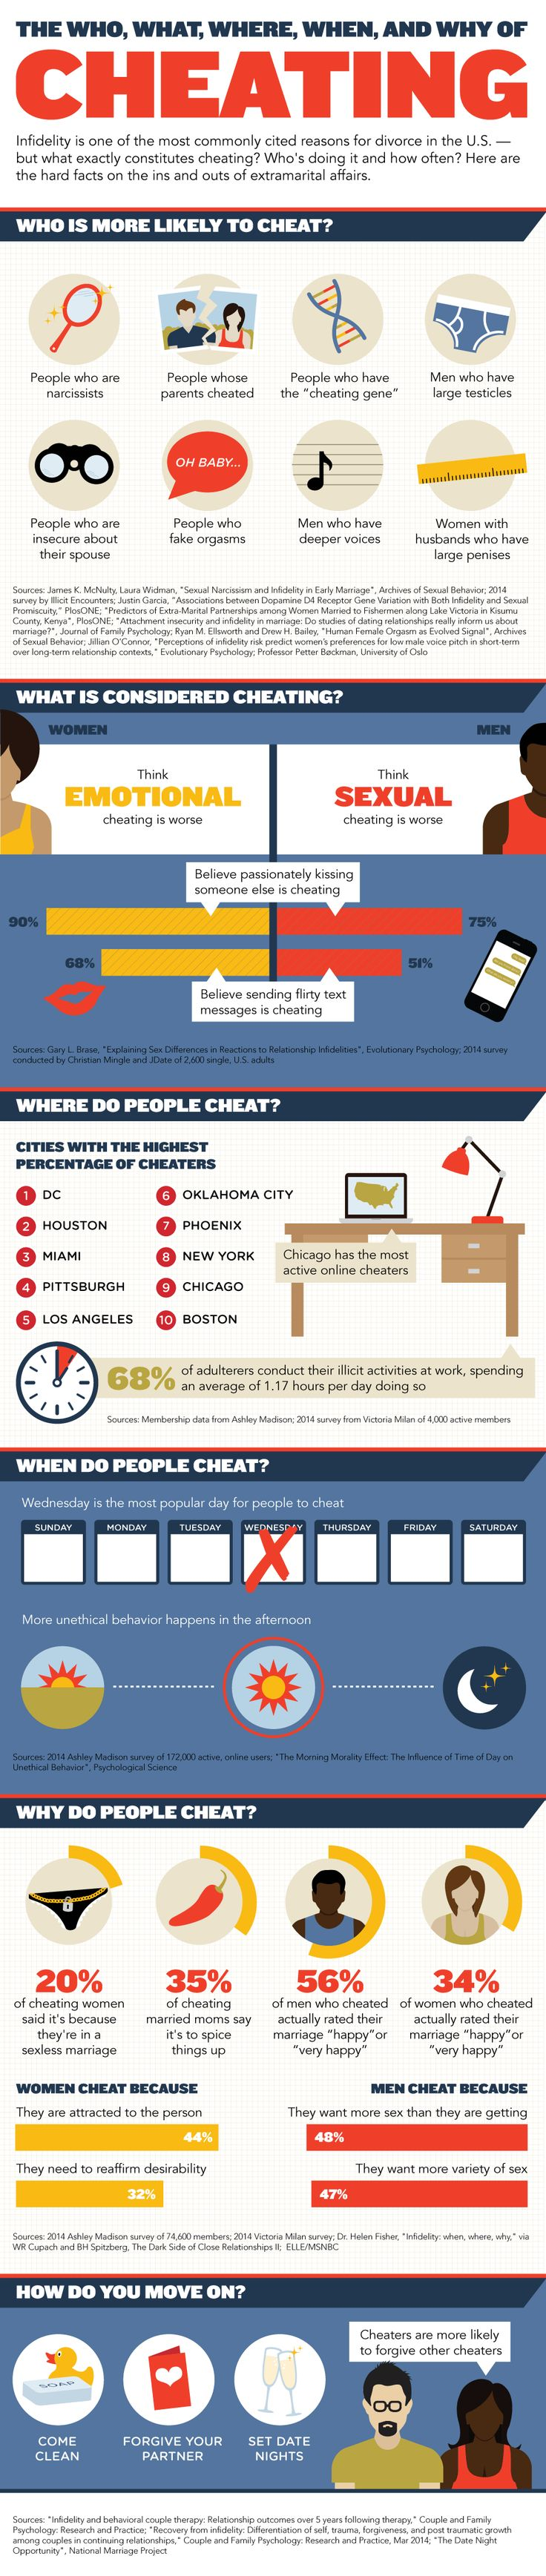 CITIES WITH THE HIGHEST PERCENTAGE OF CHEATERS: 1.DC 2.HOUSTON 3.MIAMI  4.PITTSBURGH 5.LOS ANGELES 6.OKLAHOMA CITY 7.PHOENIX 8.NEW YORK 9.CHICAGO 10.BOSTON